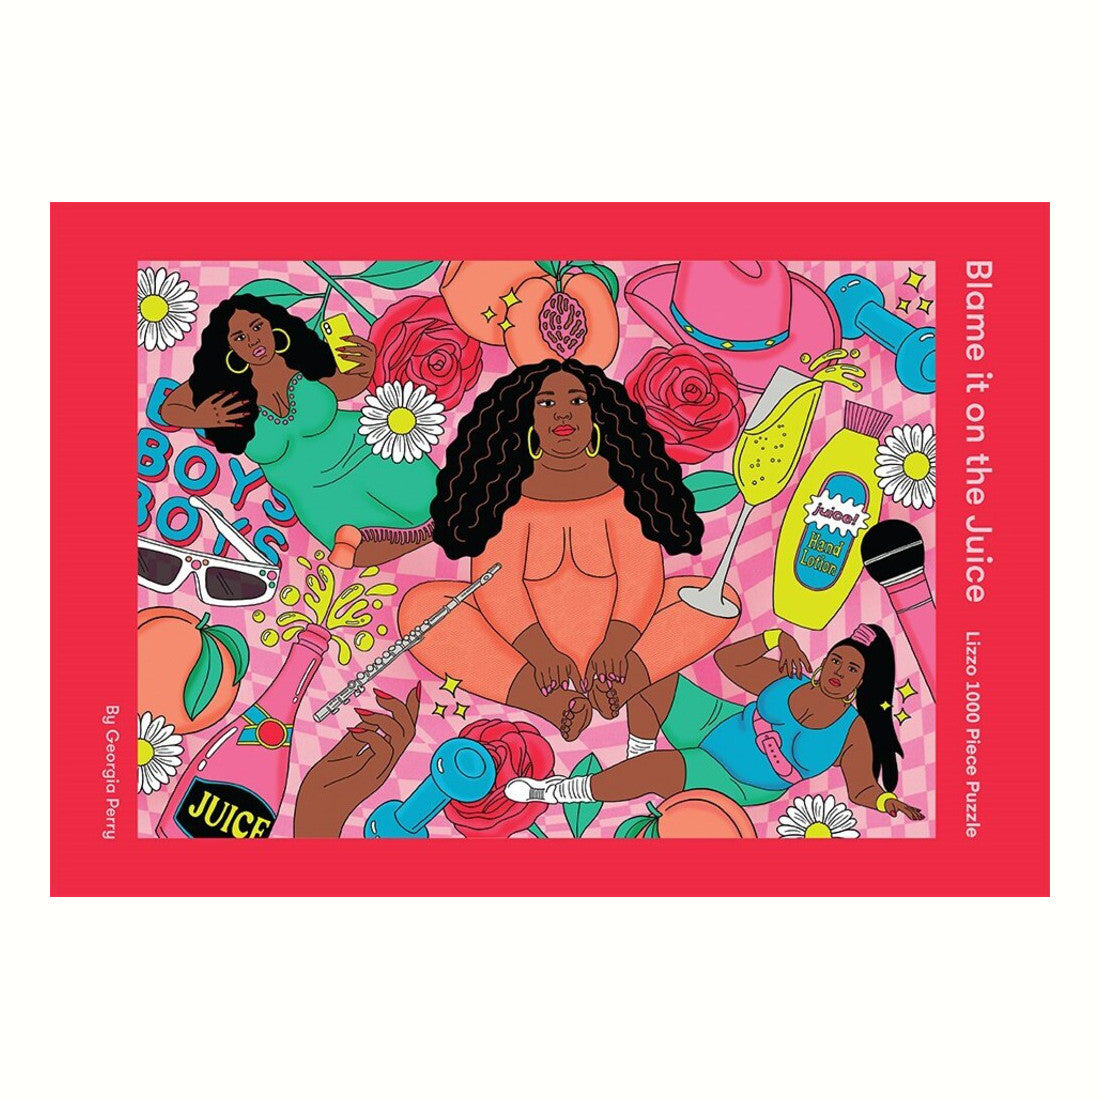 Lizzo Puzzle 1000 Pieces Rose City Goods Blame It On The Juice Georgia Perry